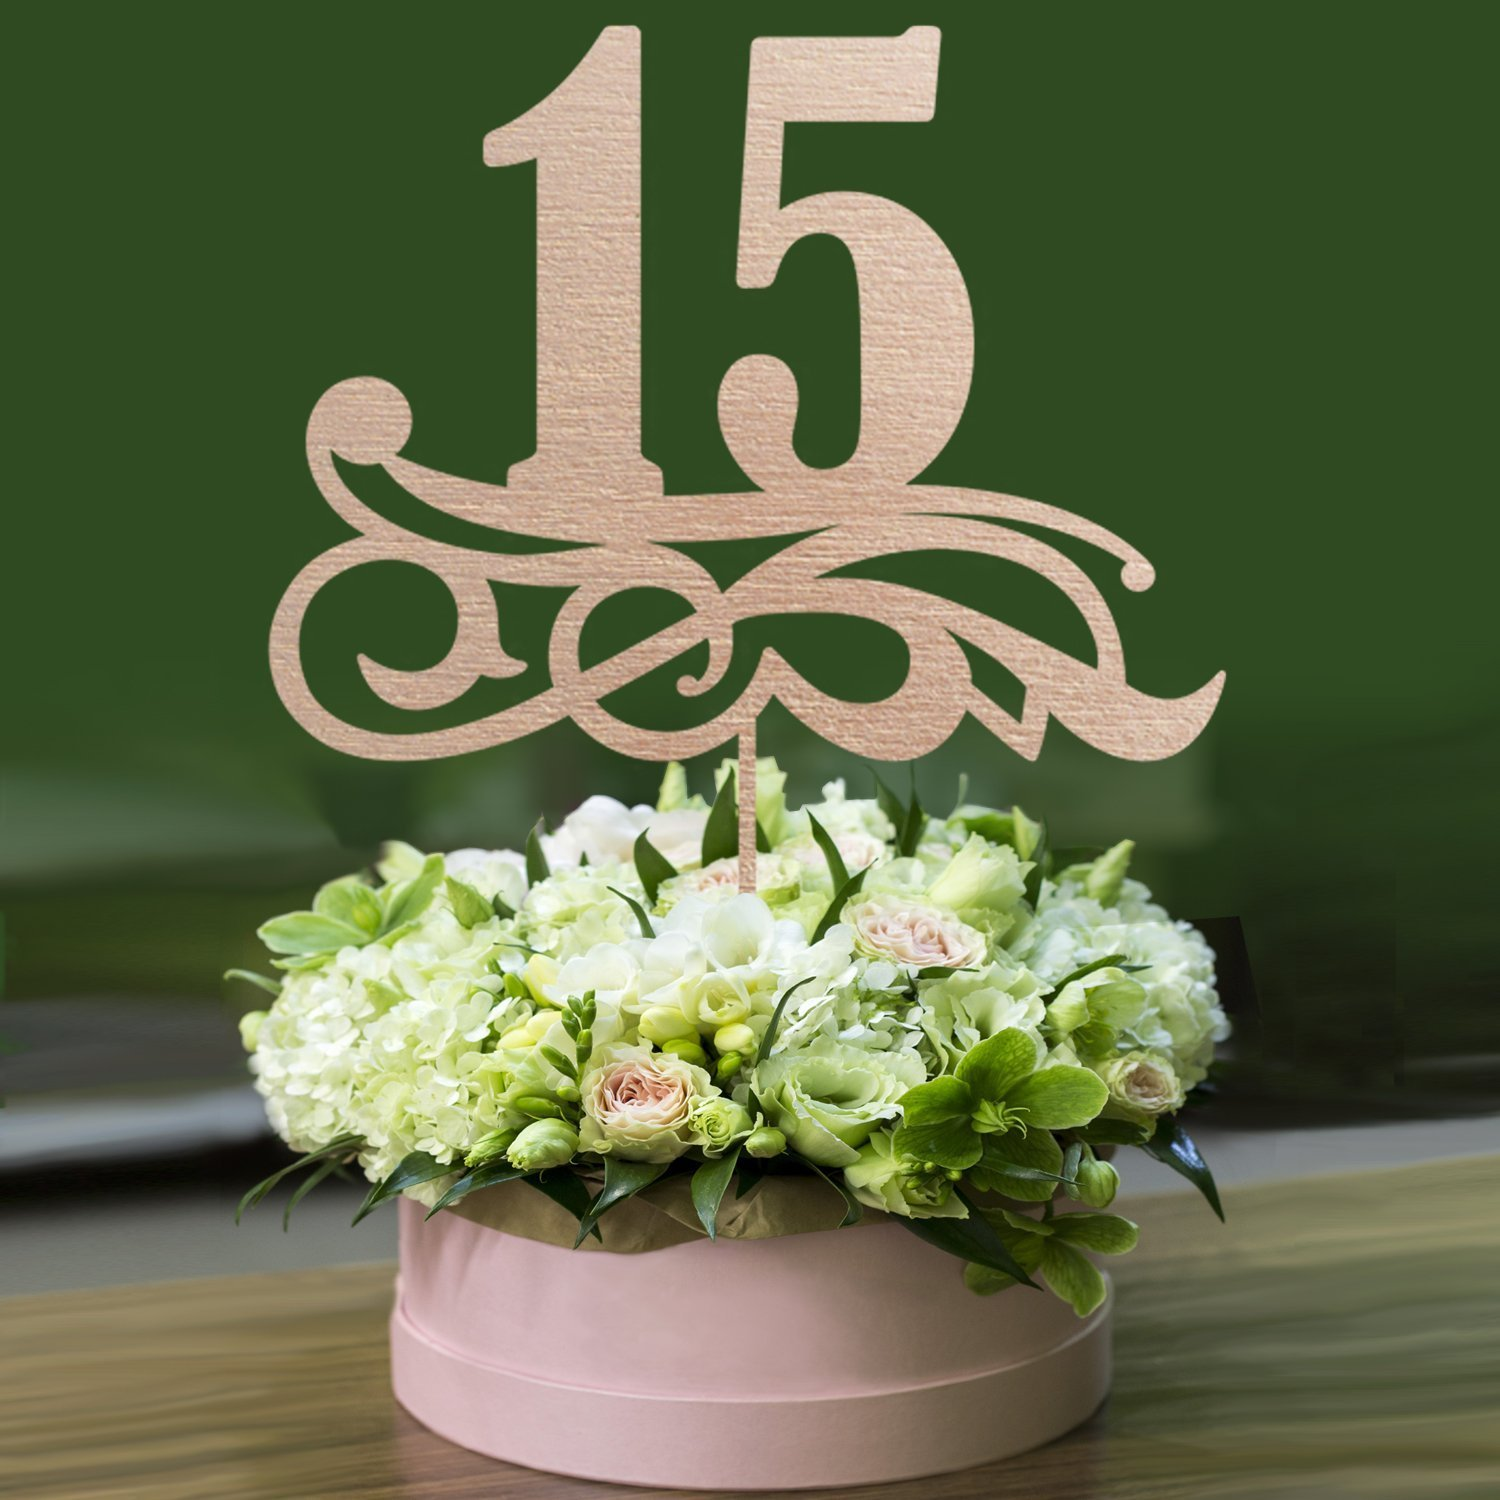 WEDDING TABLE NUMBERS On Sticks // Wooden Table Numbers - Reception Table Numbers For Wedding - Table Centerpiece - Wedding Decorations